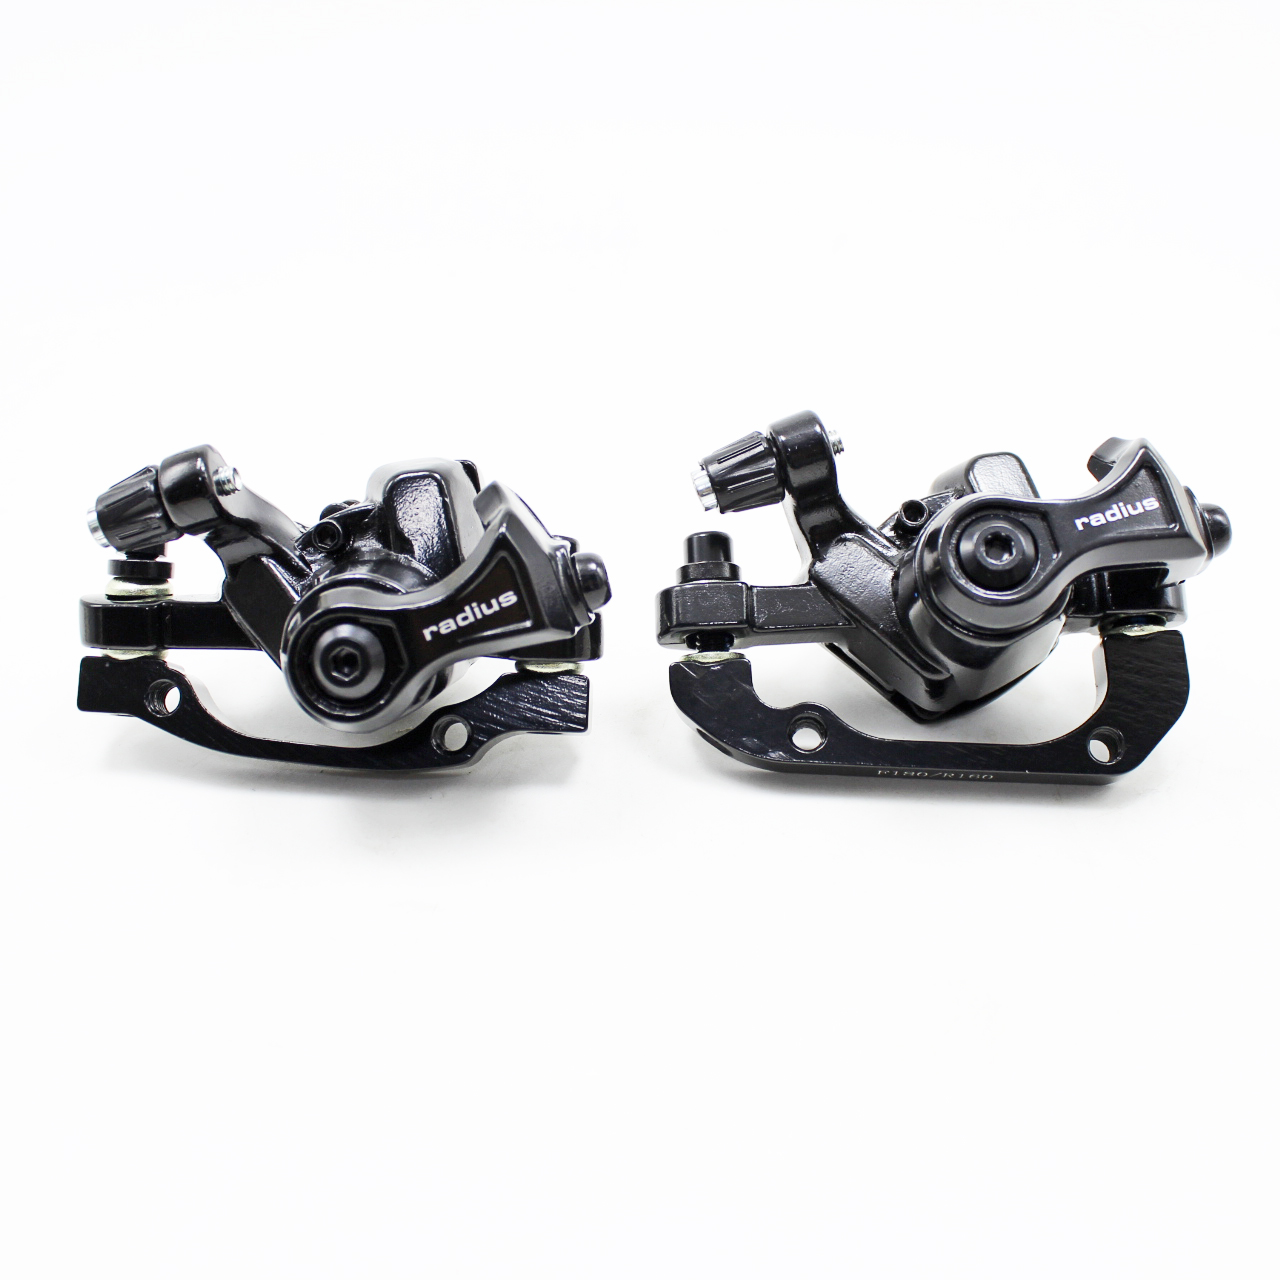 BlueSunshine MTB BB7 Mechanical Disc Brake Front and Rear 160mm Whit Bolts and C